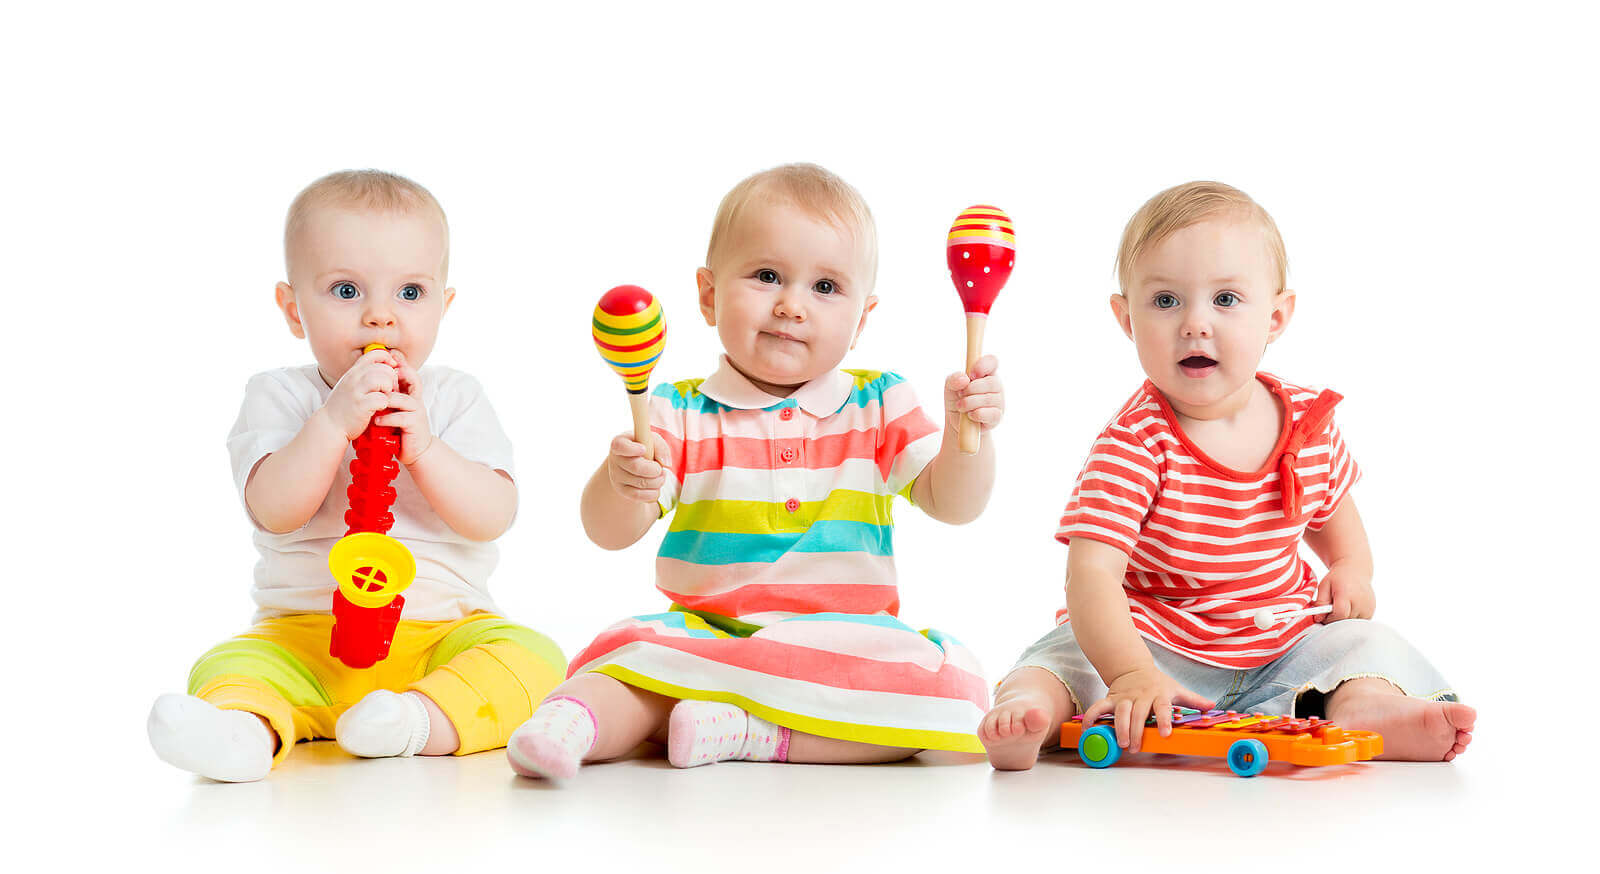 Babies playing musical instruments.